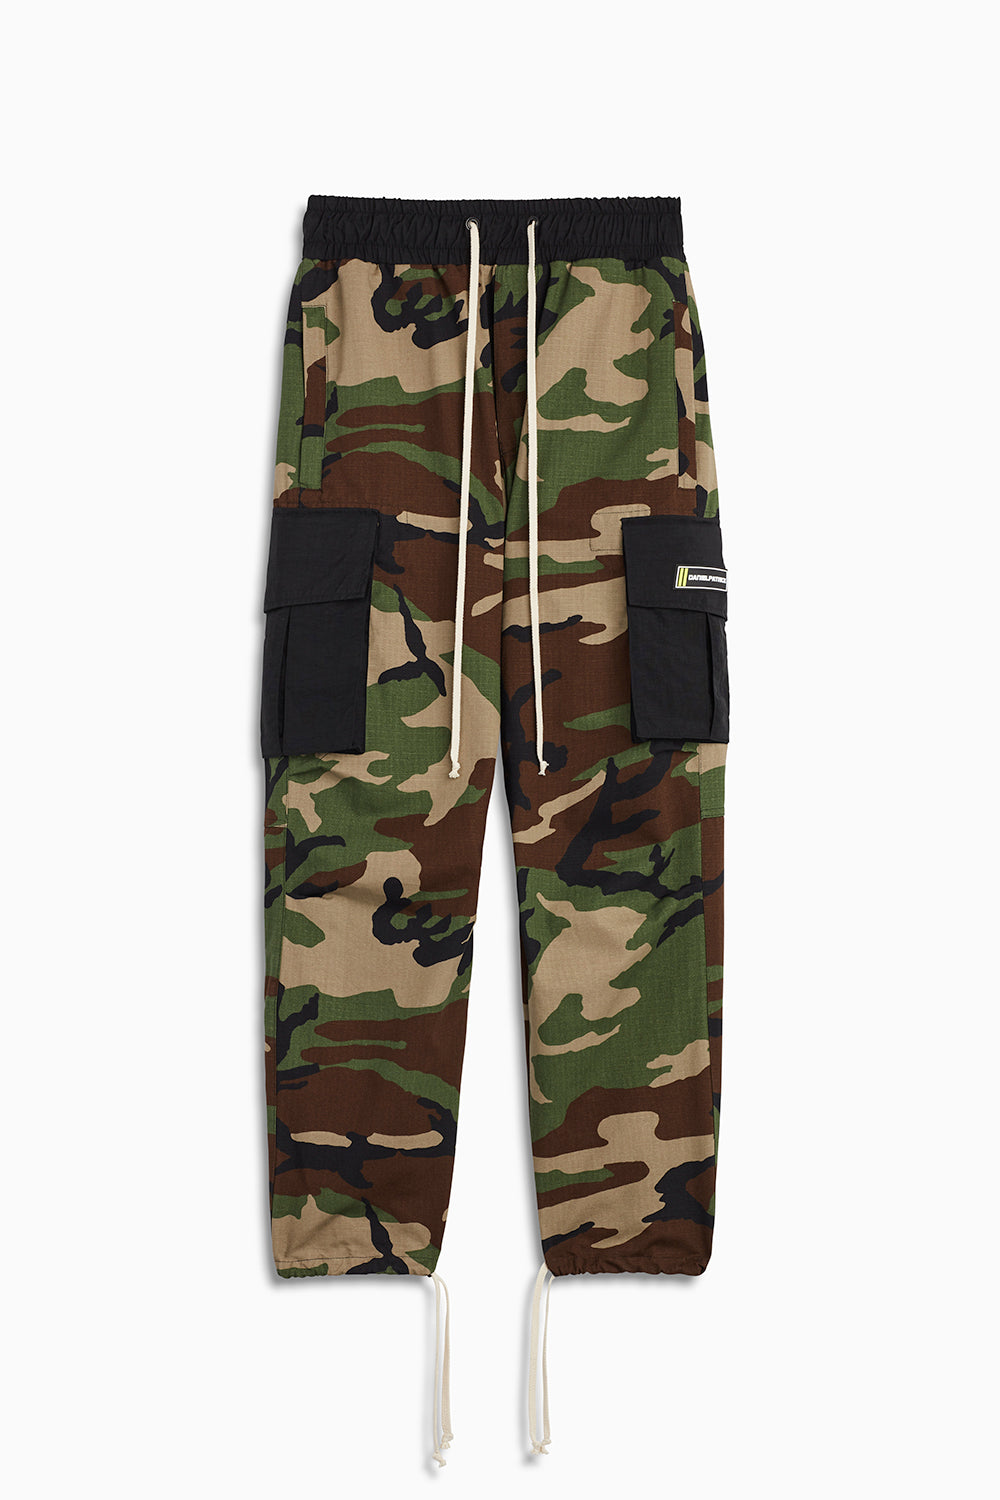 M93 cargo pants in camo/black by daniel patrick